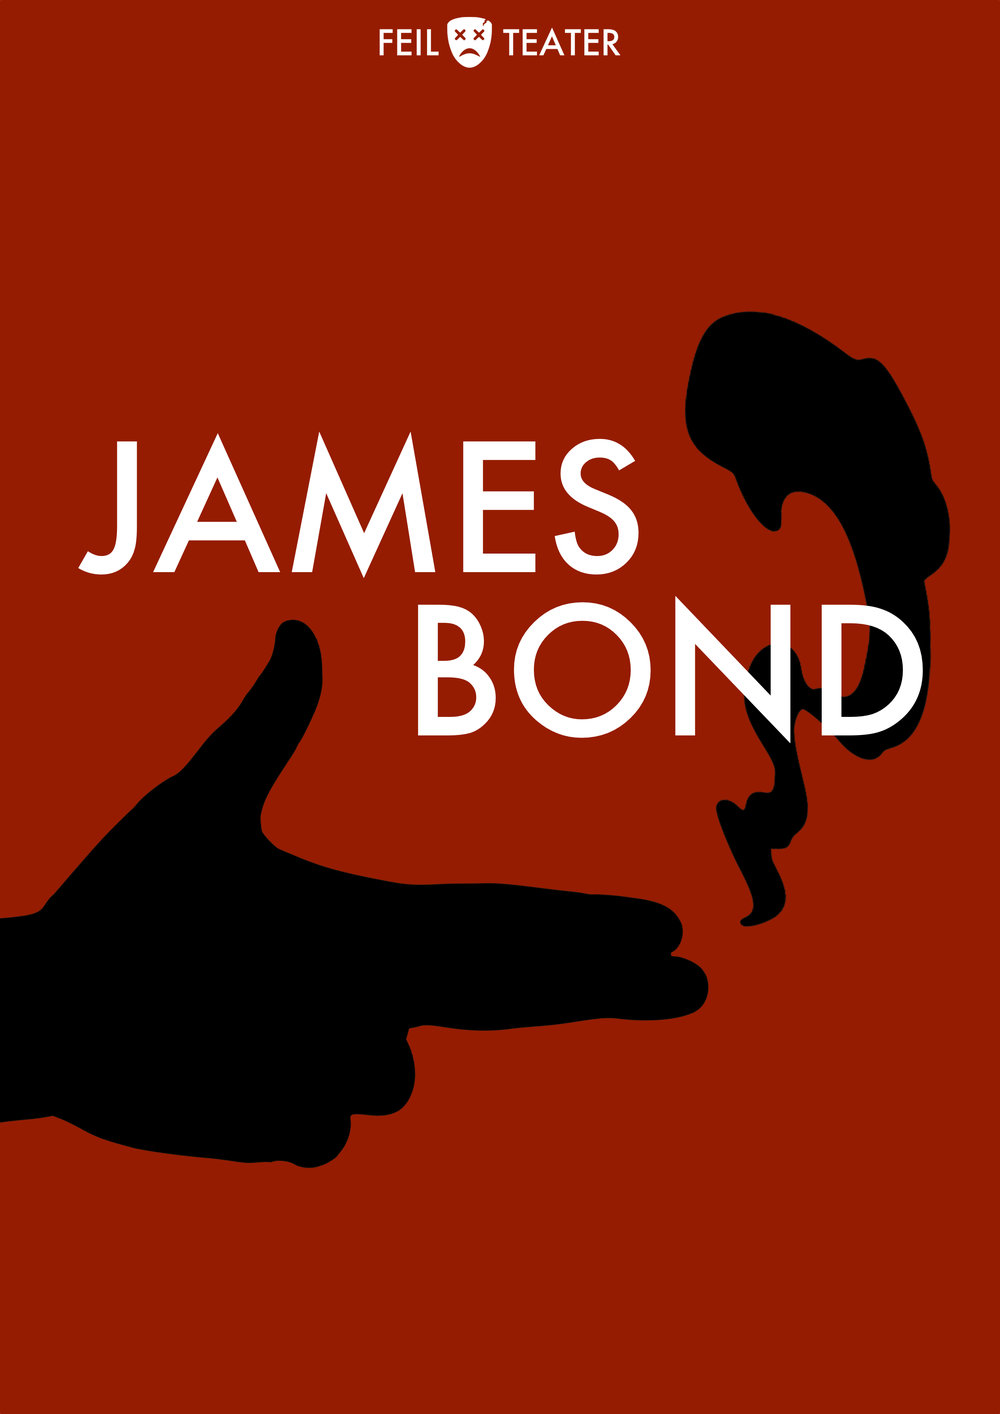 Kopi av James Bond - plakat 2018.jpg